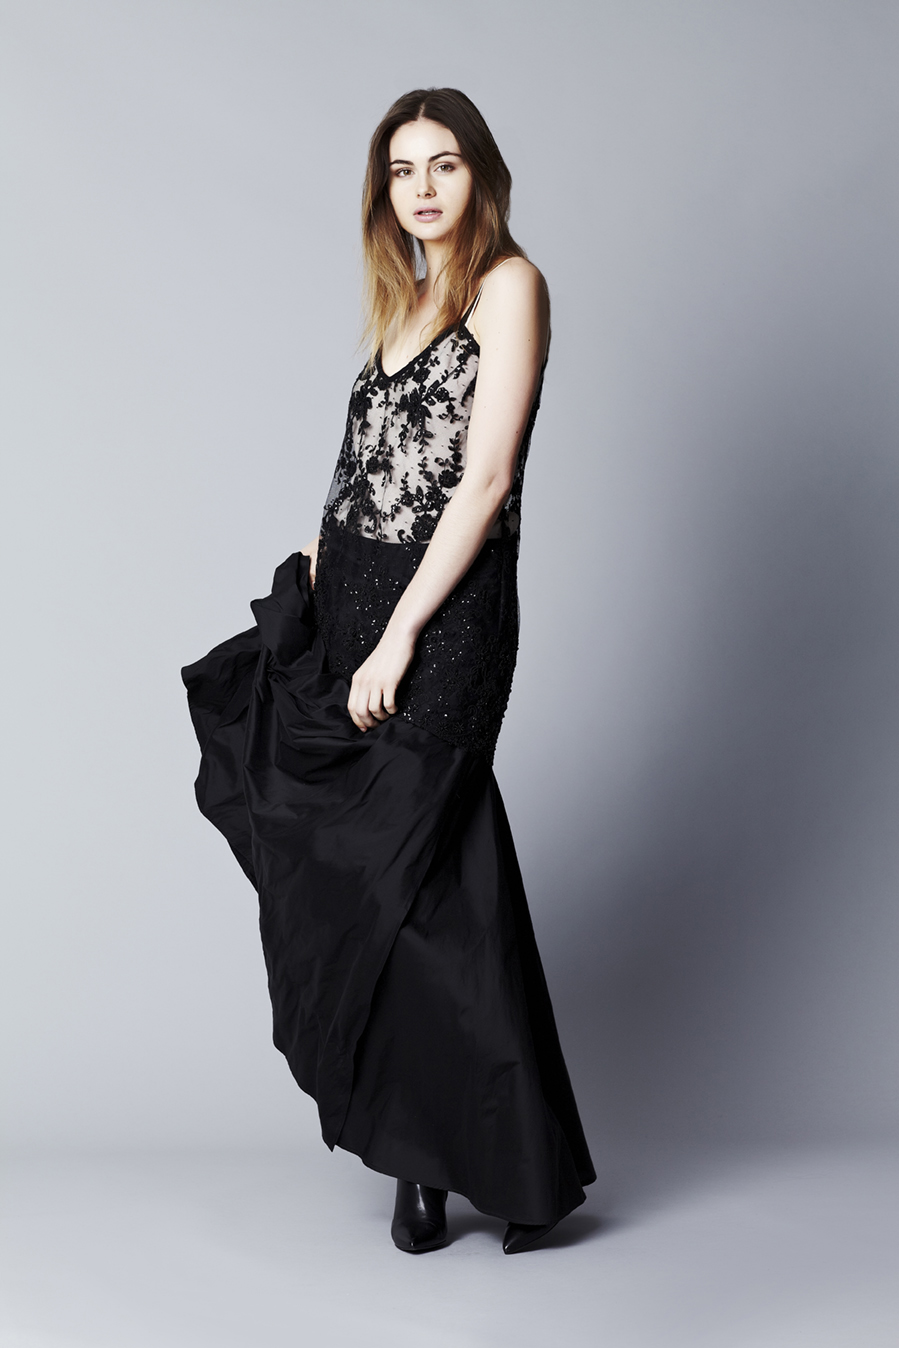 Sadie cami // Limited Edition Black Lace  Greta Garbo full circle skirt // Black